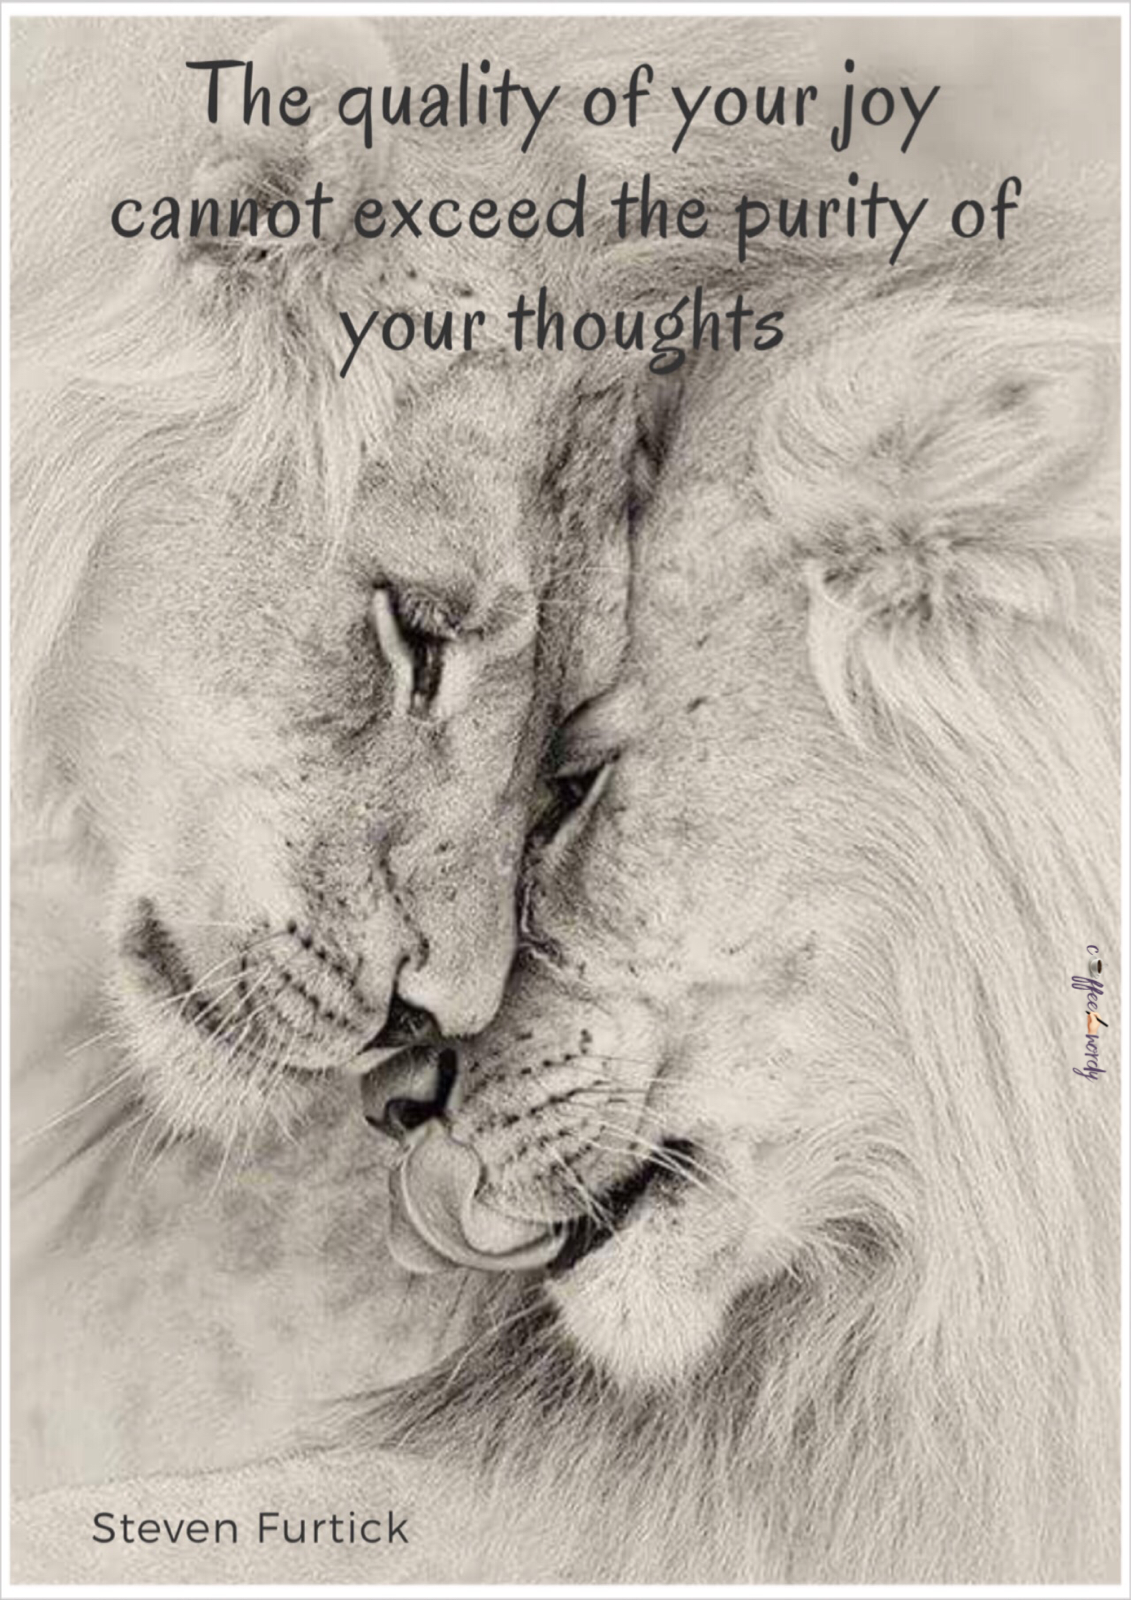 The quality of your joy cannot exceed the purity of your thoughts ...